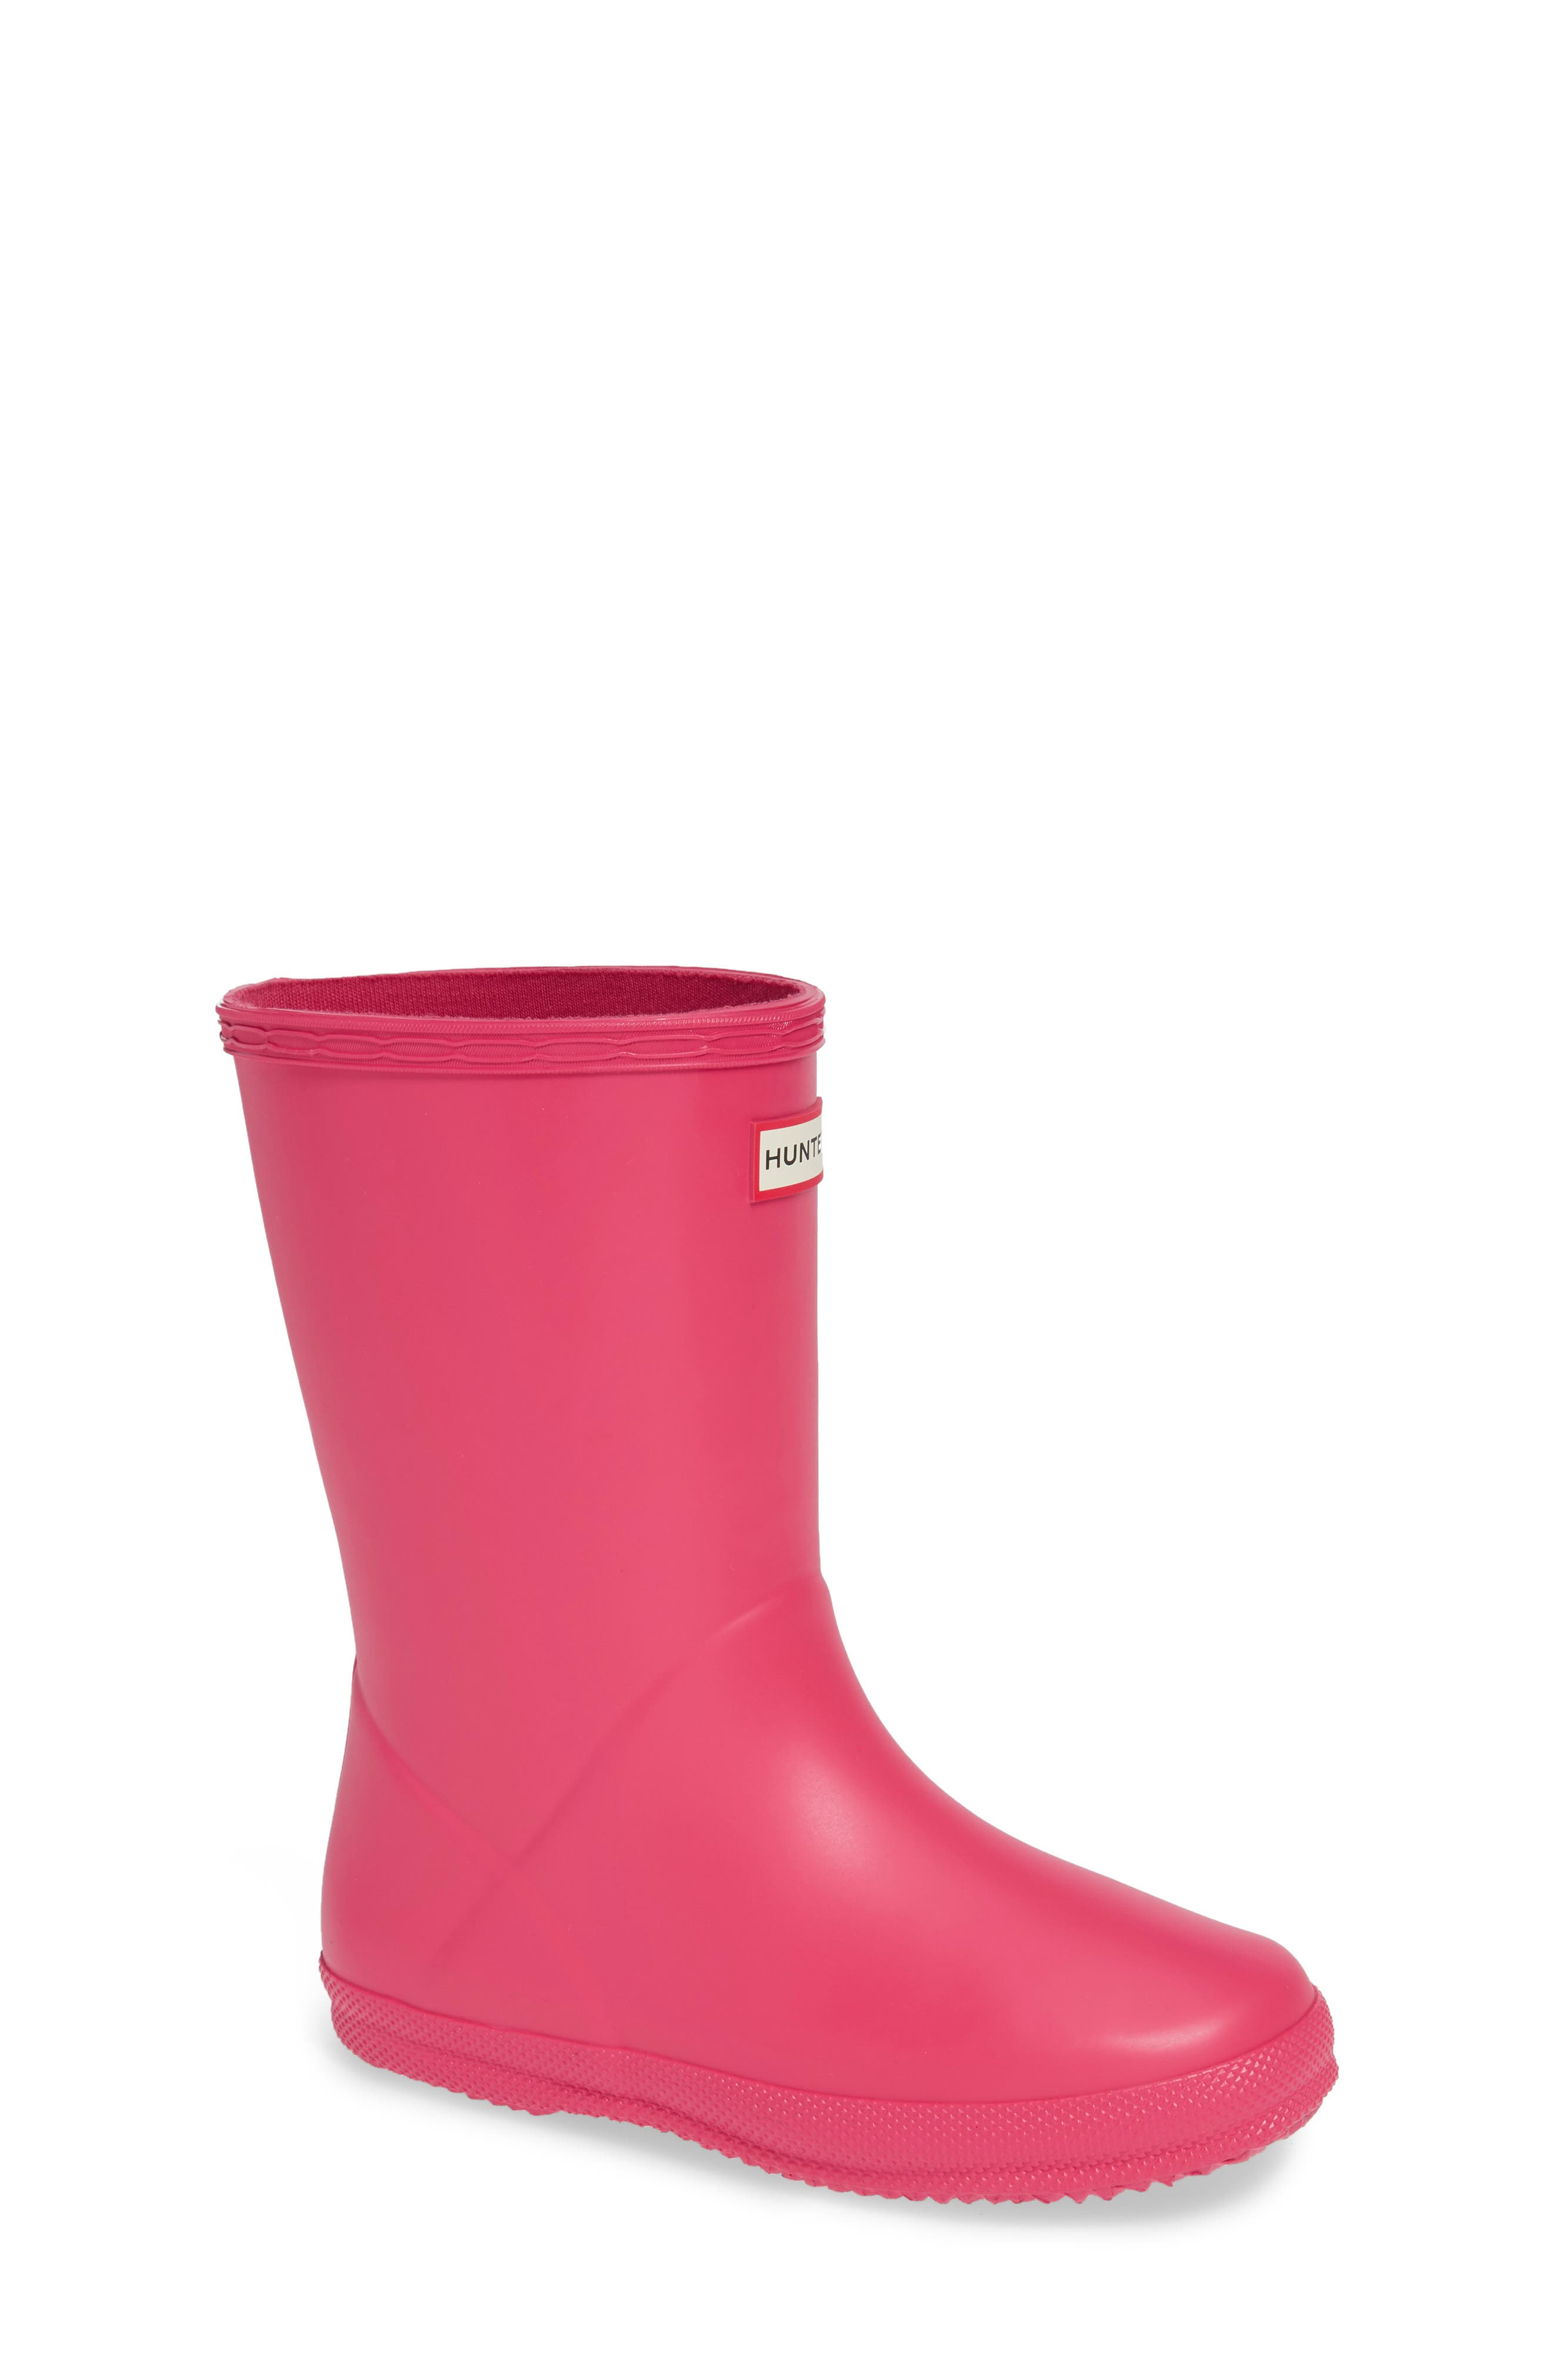 'First Classic' Rain Boot,                             Main thumbnail 1, color,                             Bright Pink